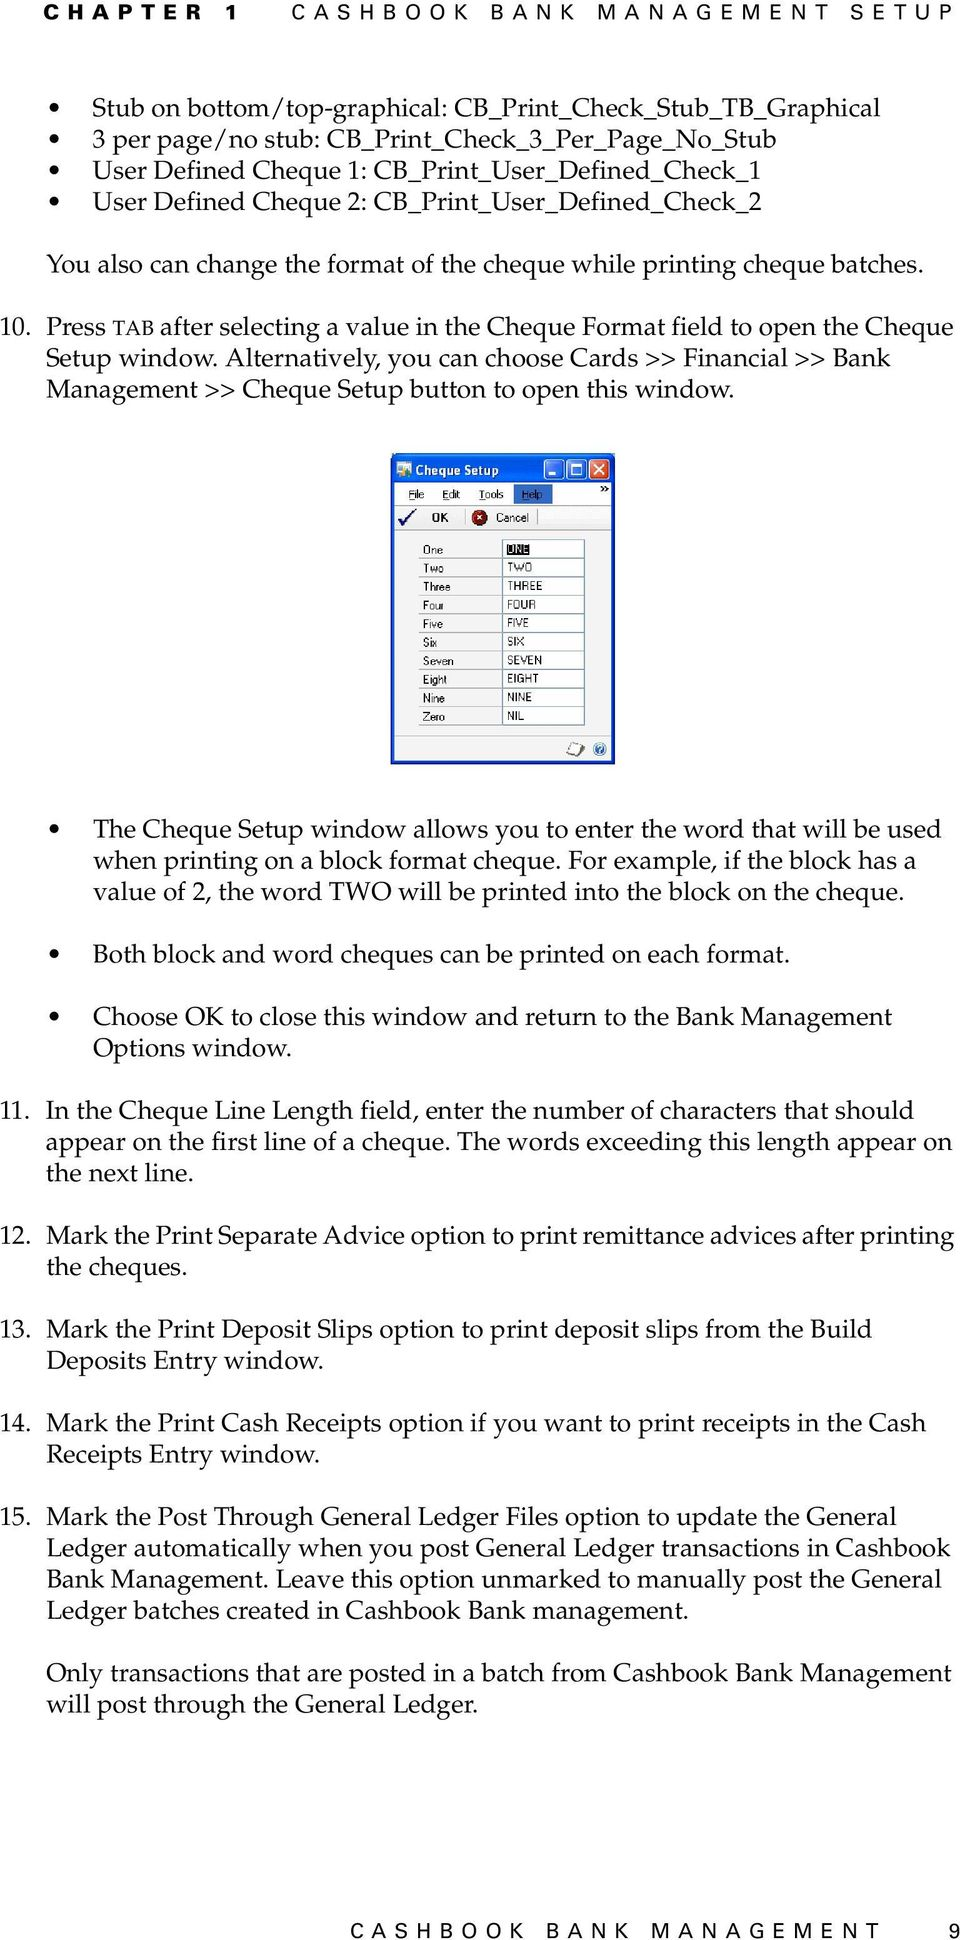 Press TAB after selecting a value in the Cheque Format field to open the Cheque Setup window.